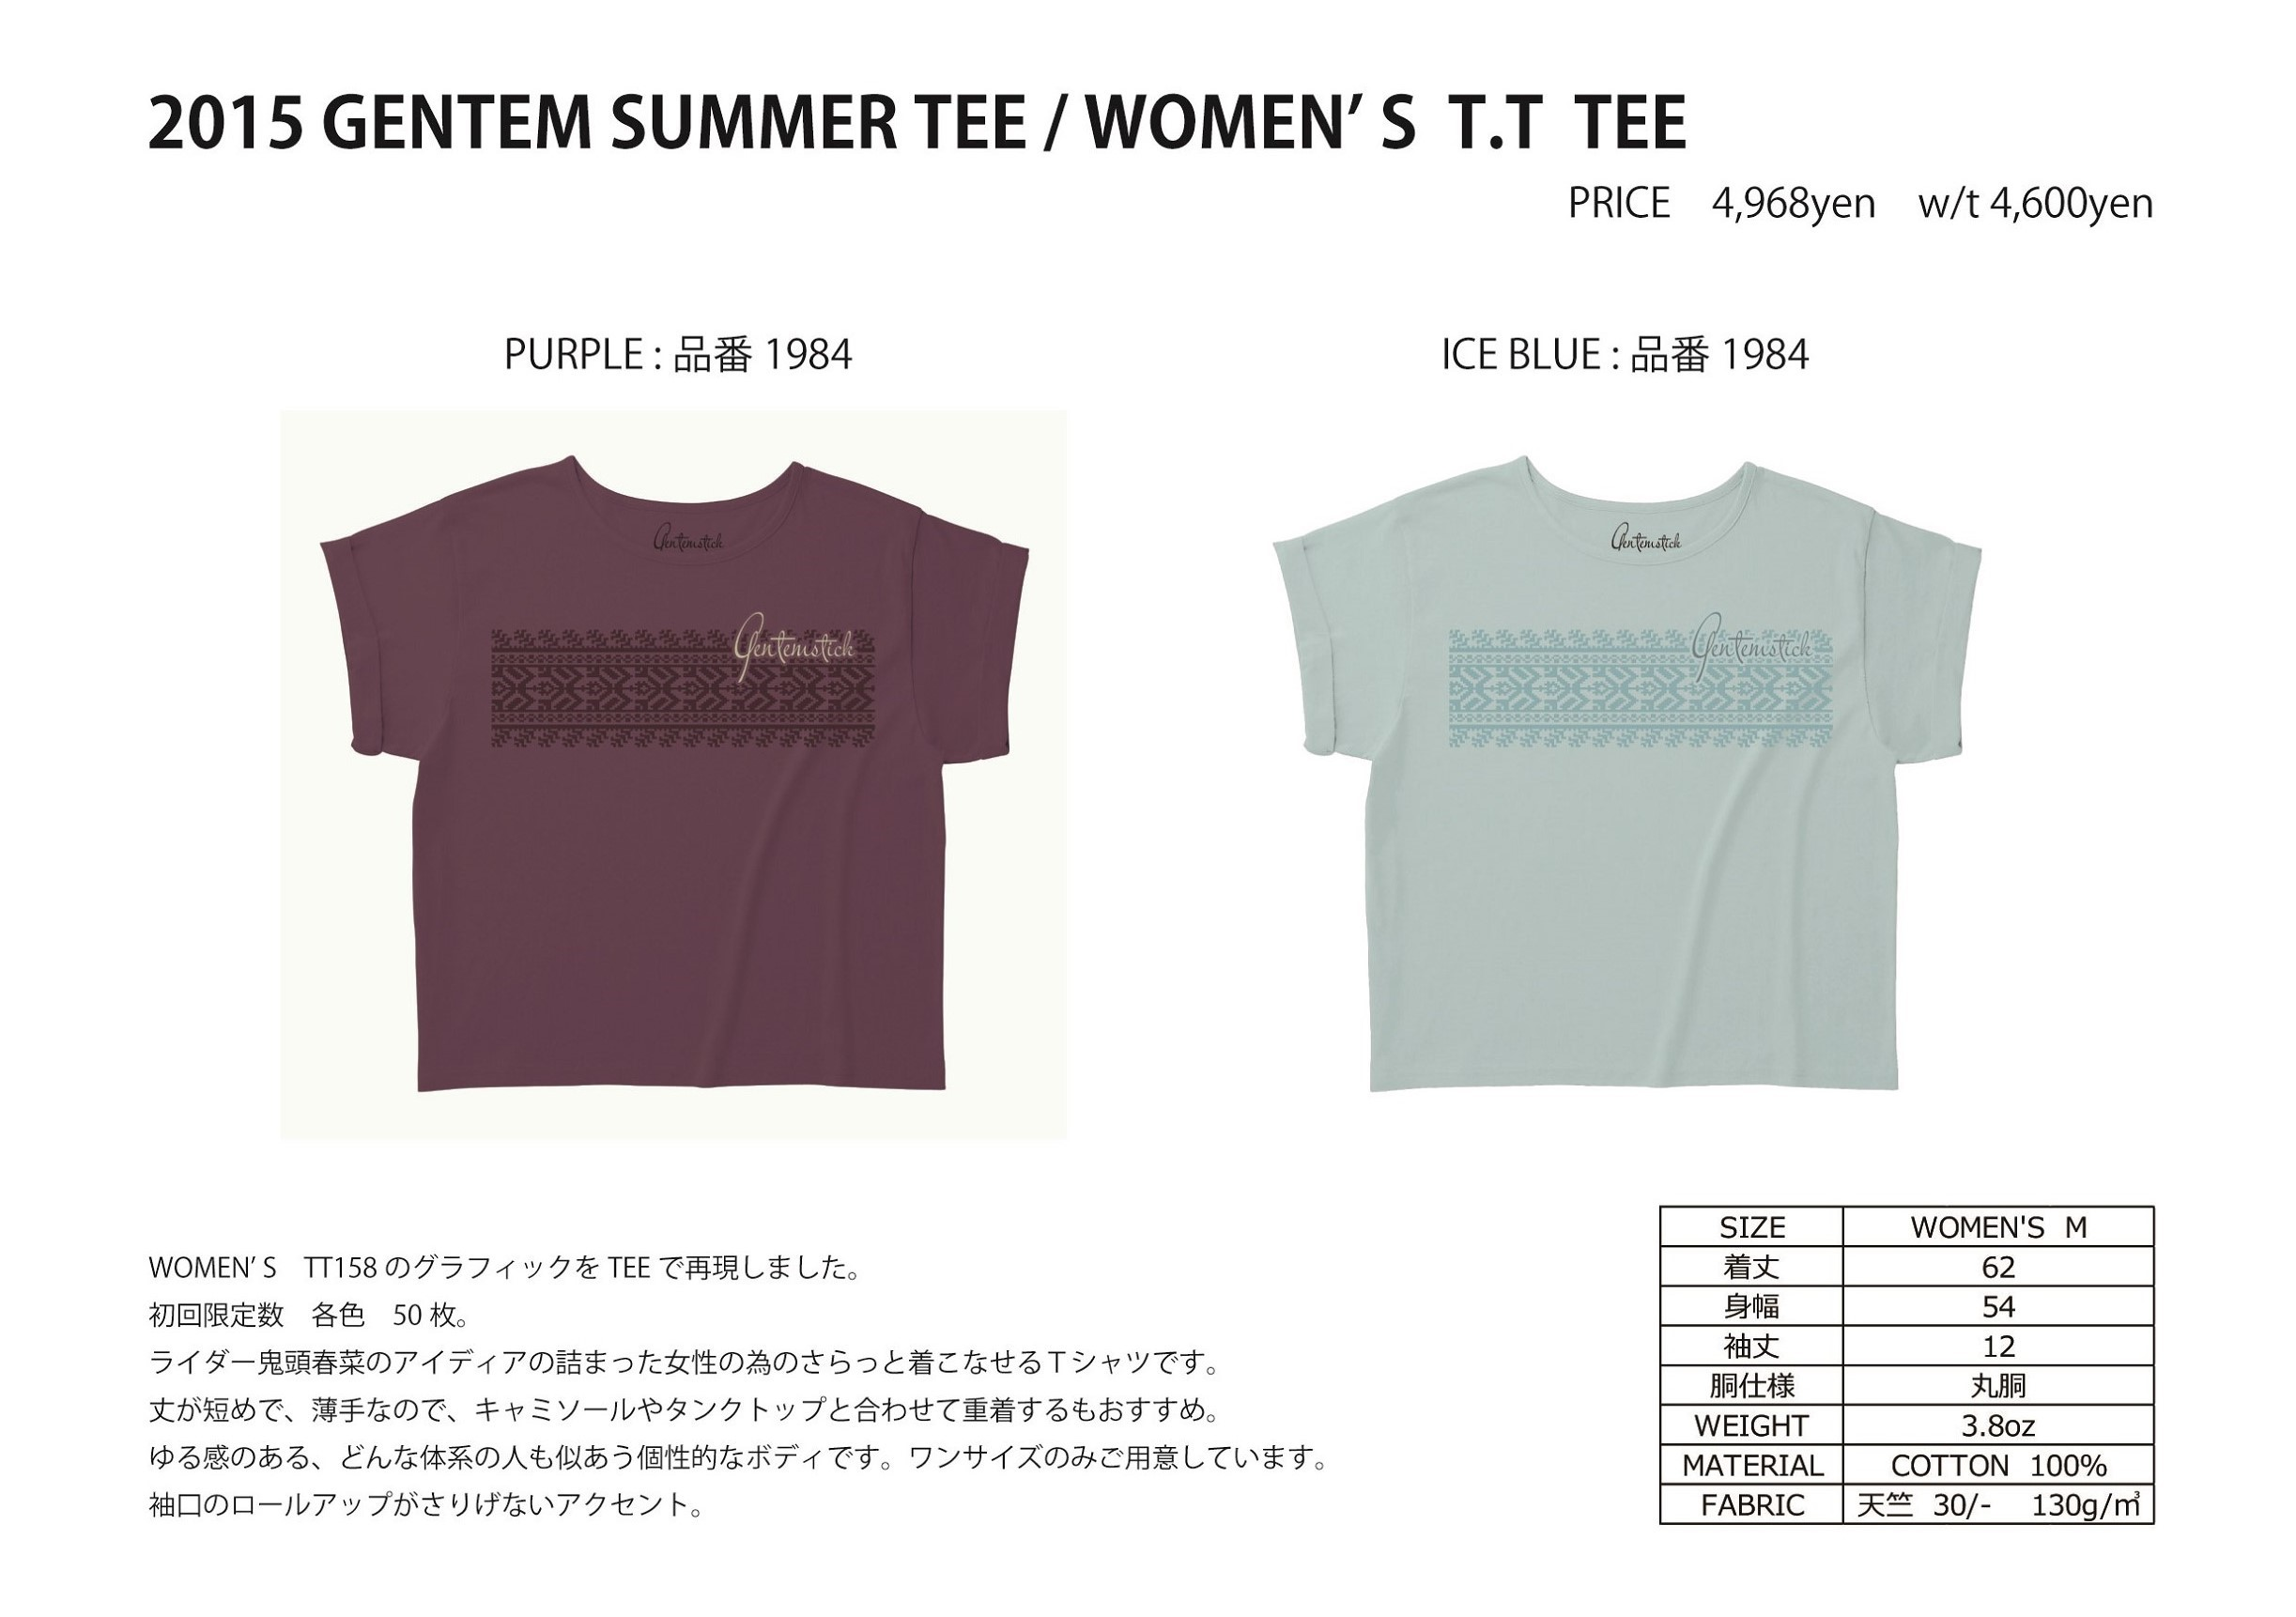 15-16summerTee women's TT tee